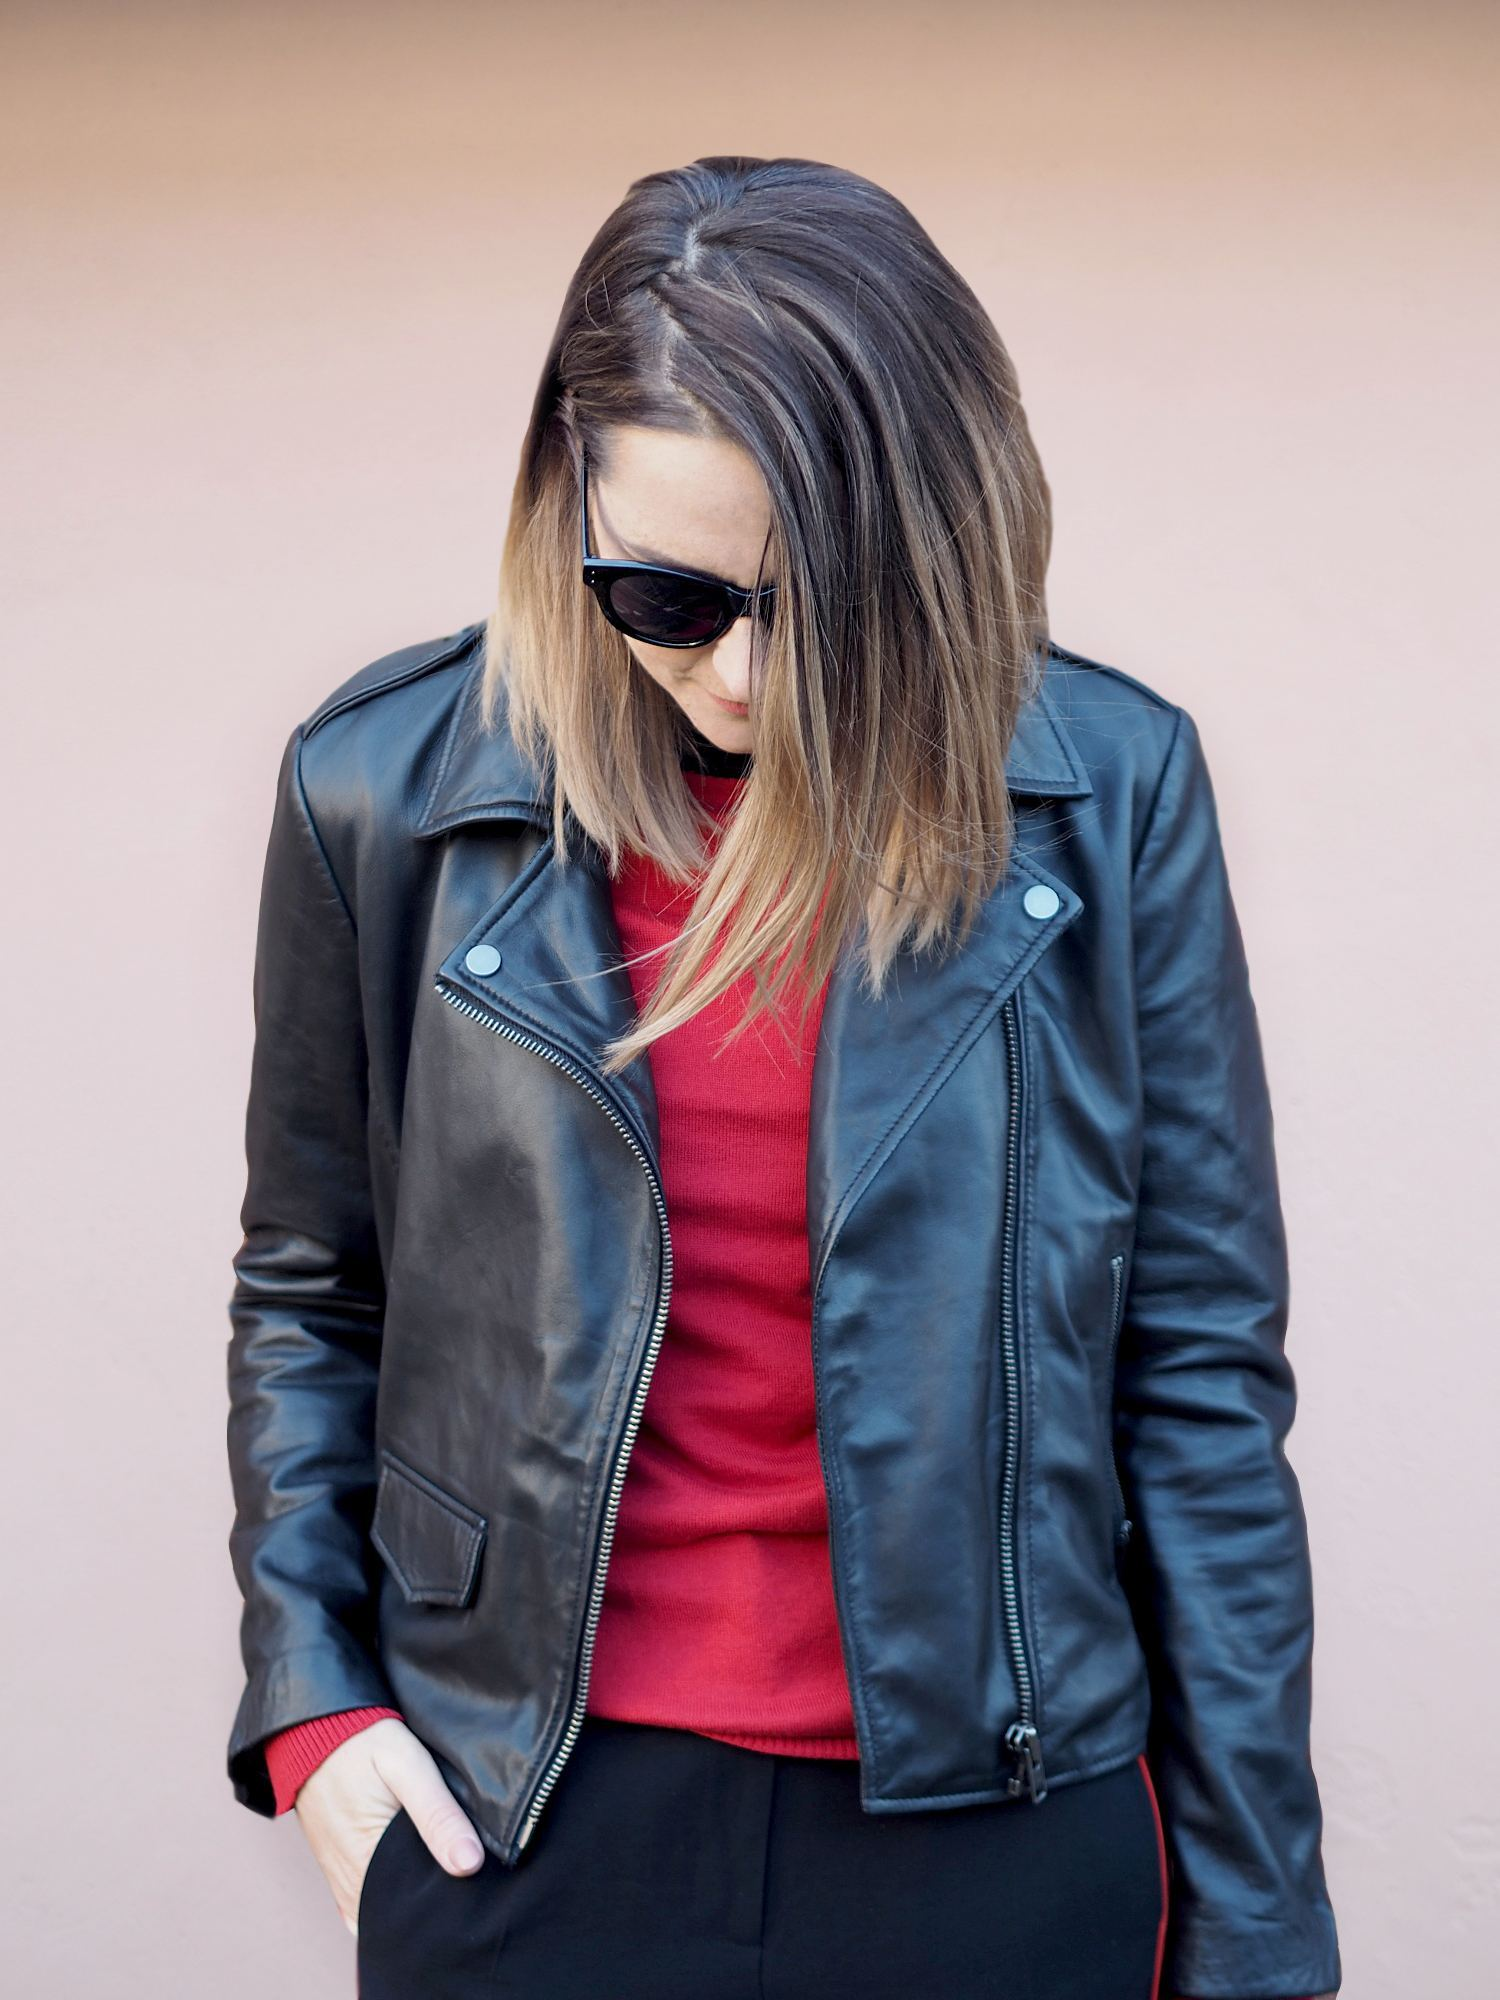 real leather jacket outfit casual with red jumper sporty outfit